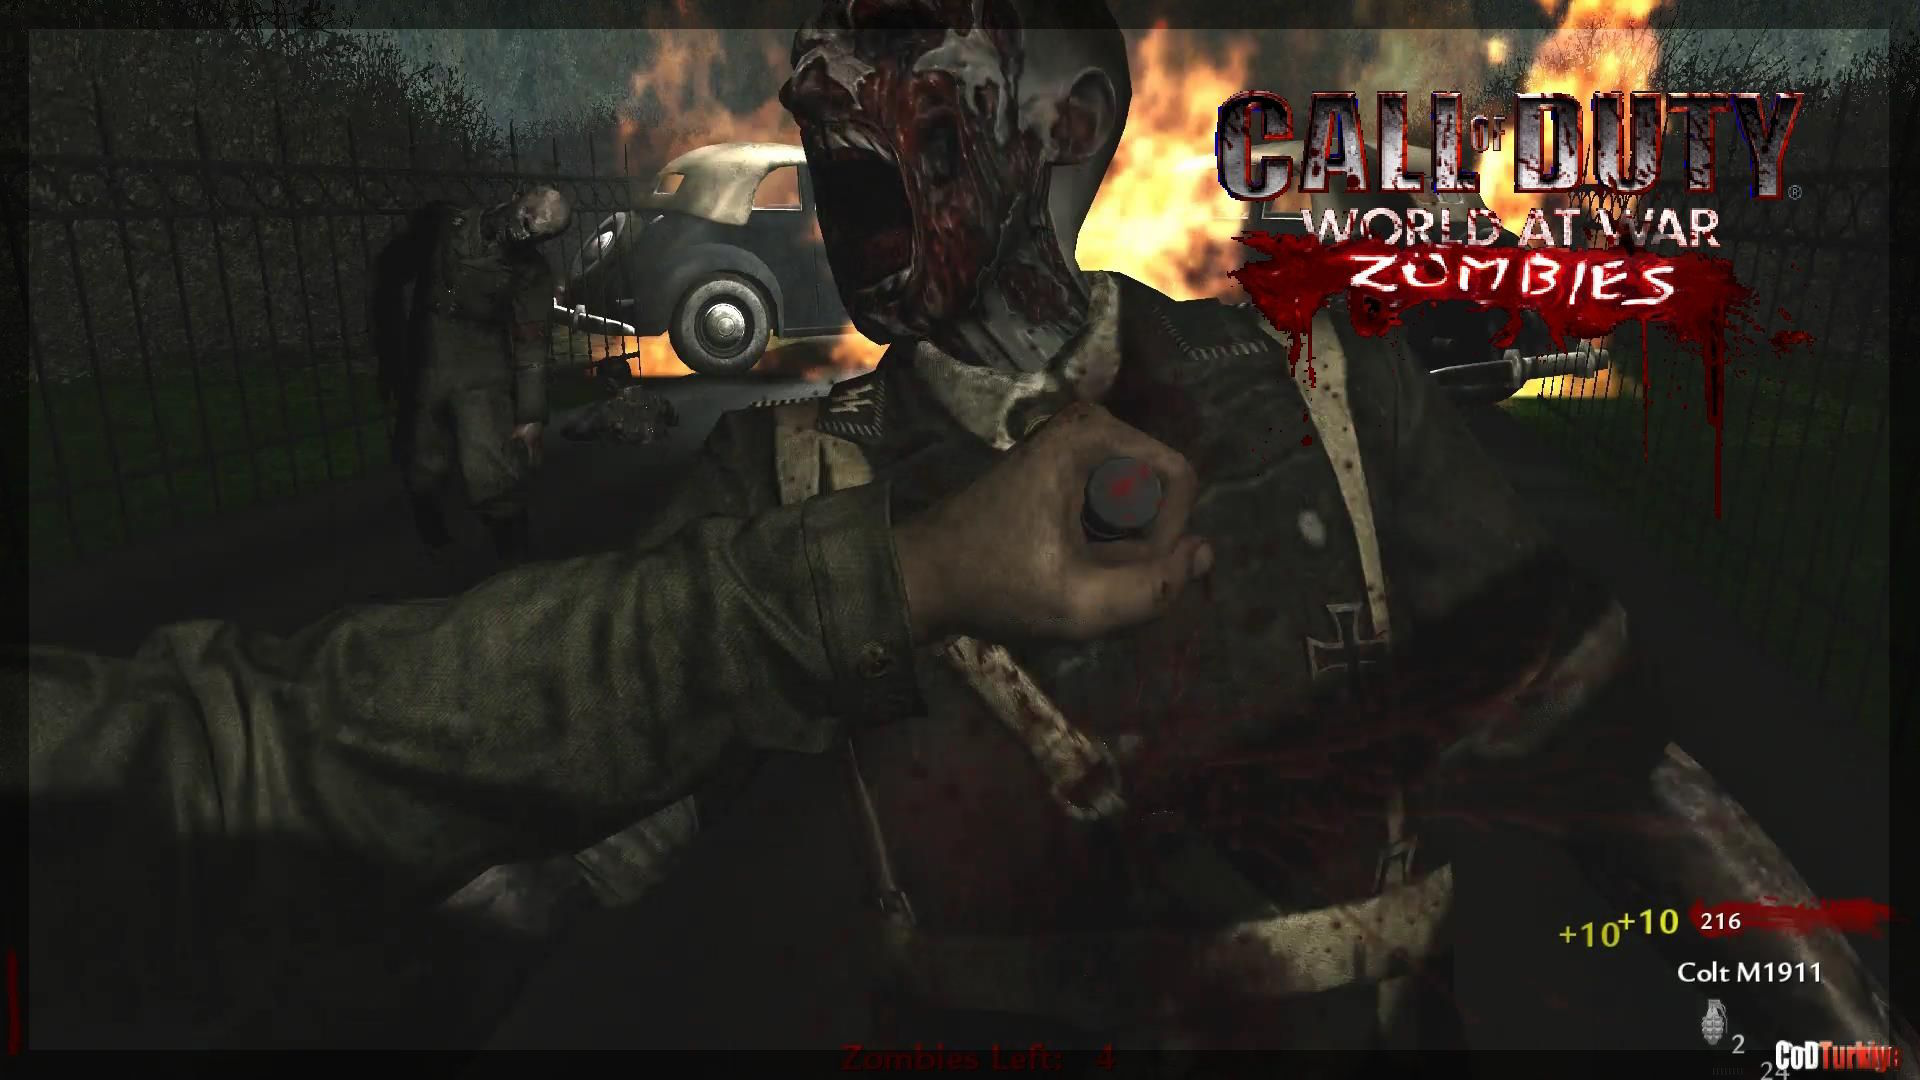 Call of Duty 5 World at War Zombies Map zm_camping